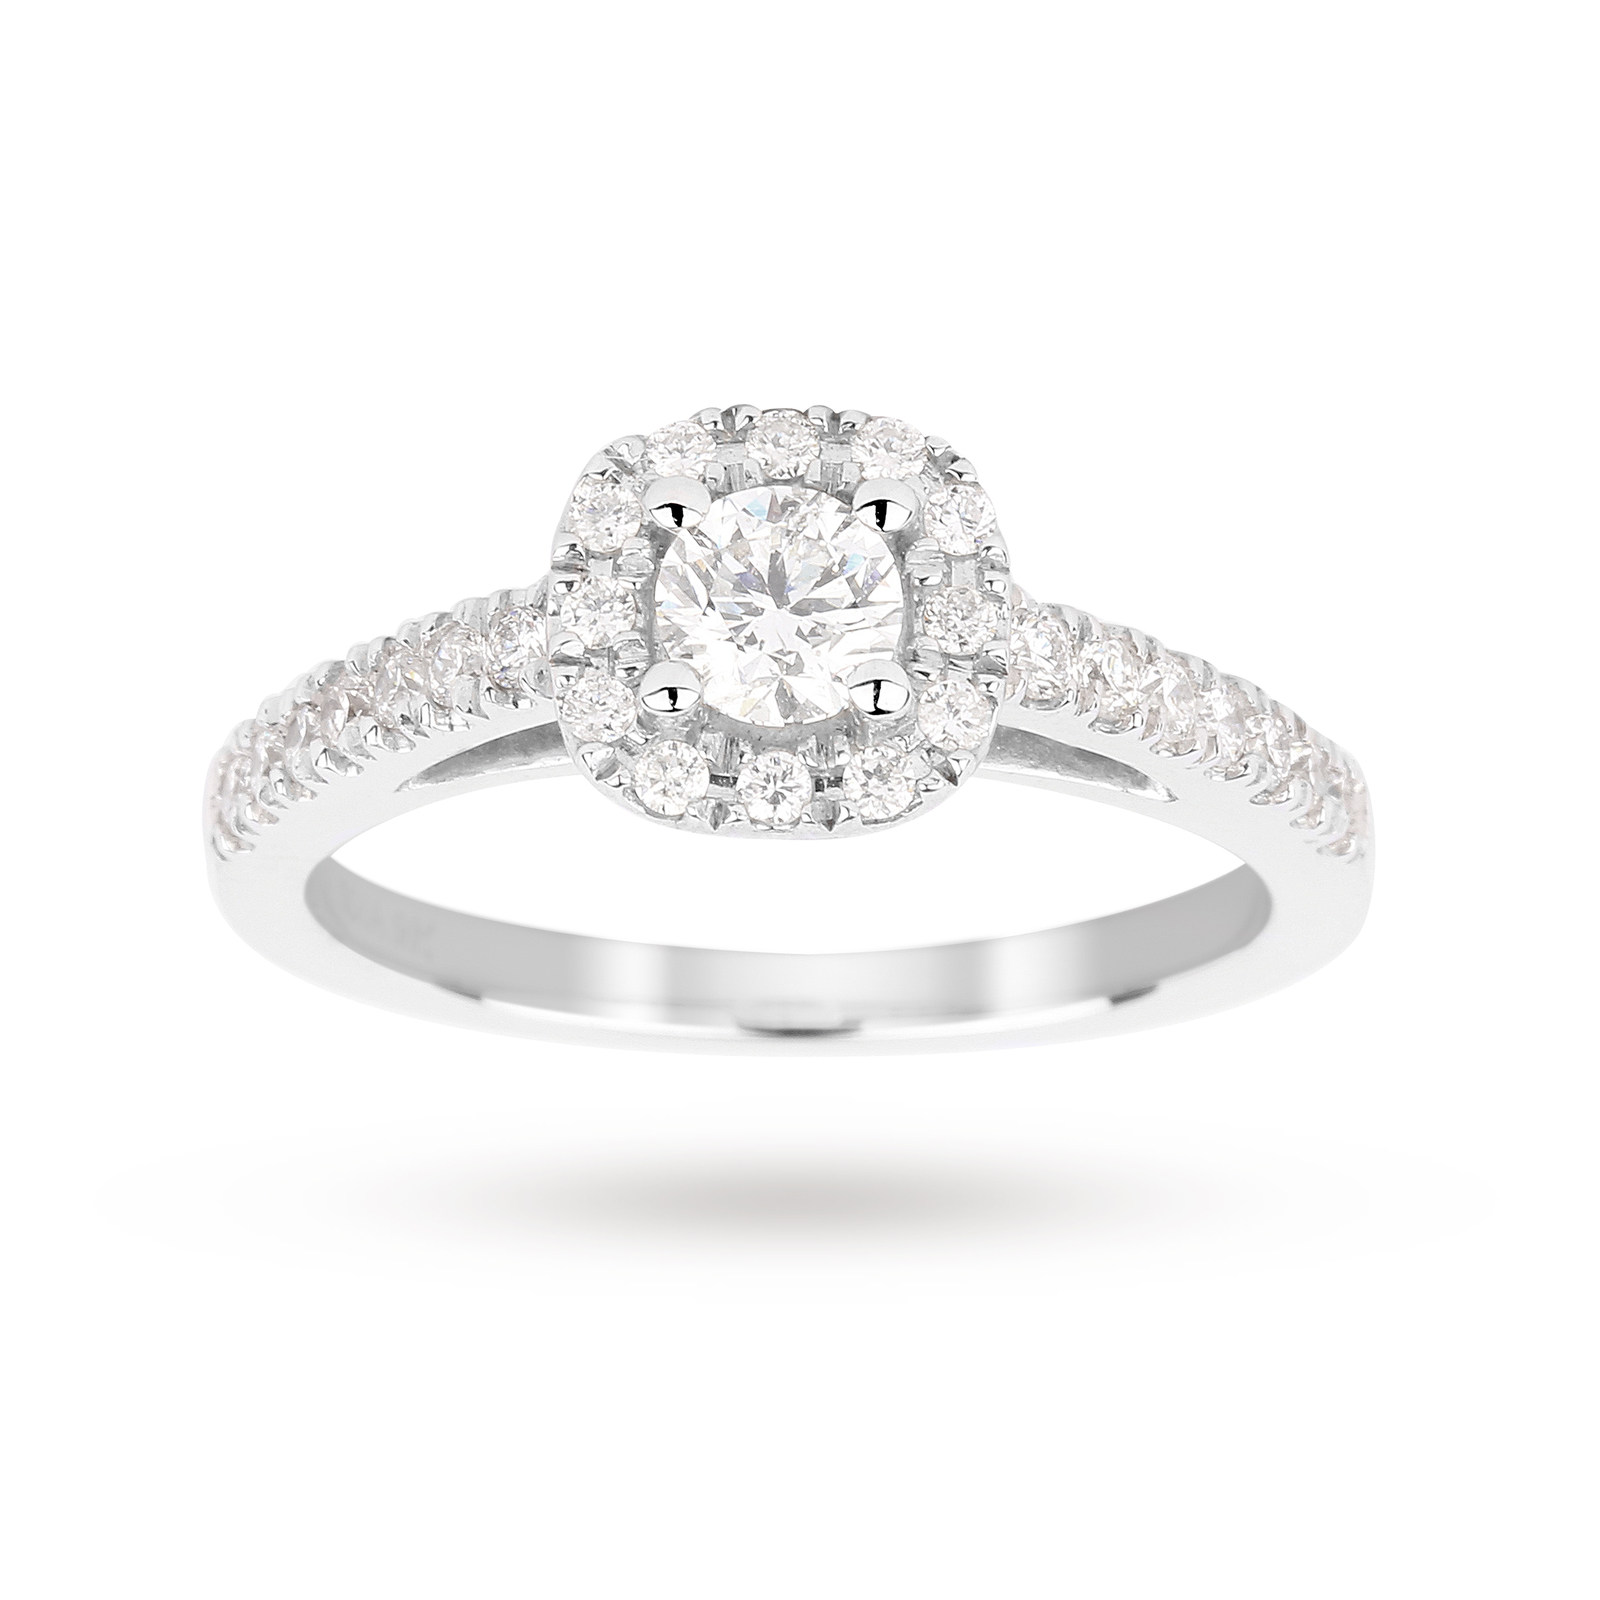 blog of engagement weight carat rings diamond is the ritani a size ring average what